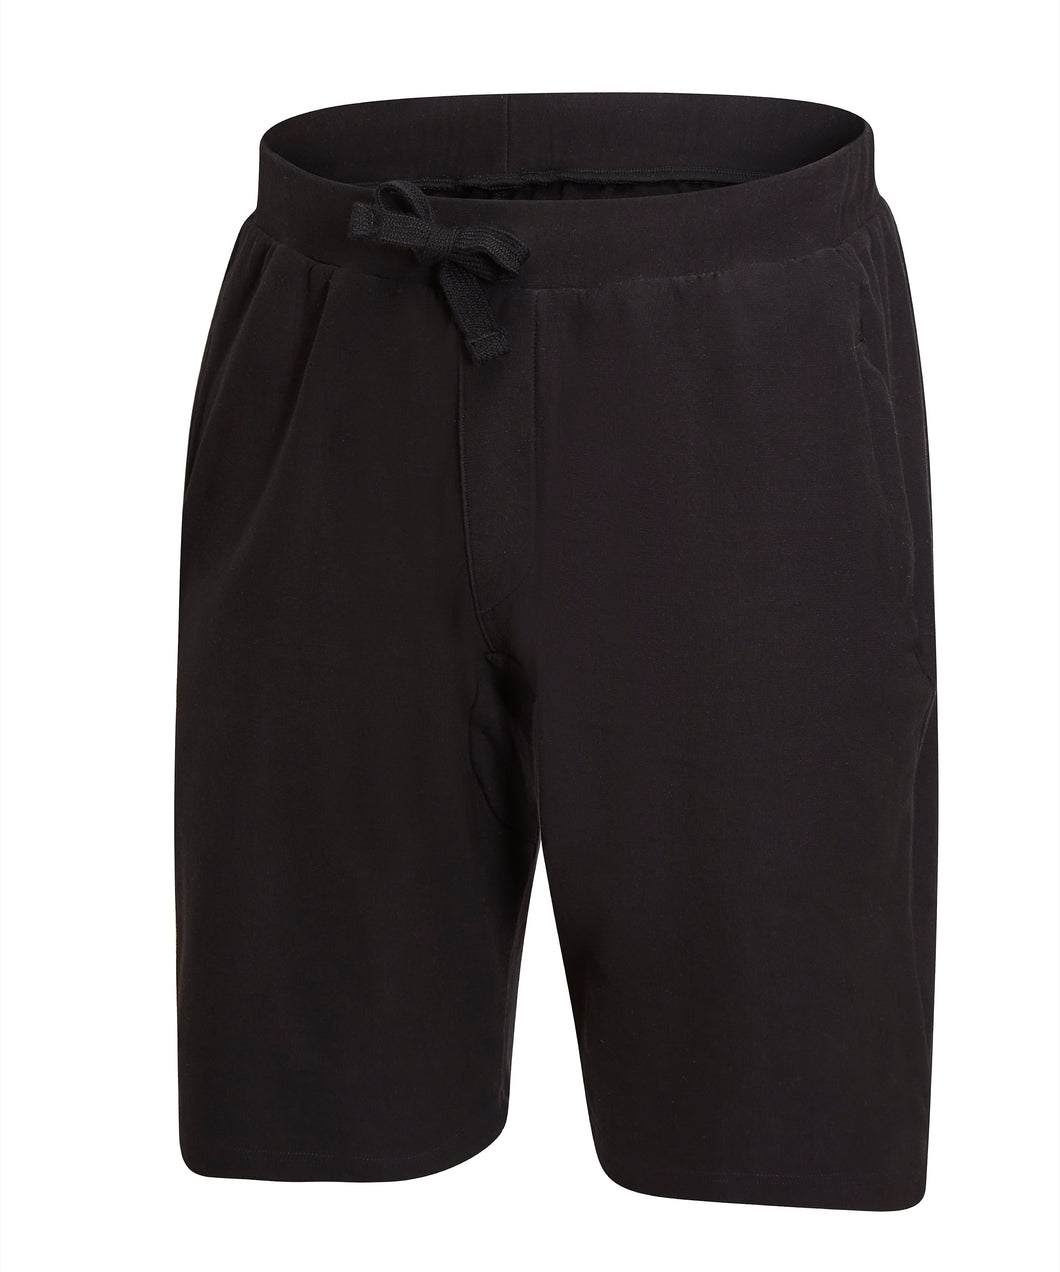 Tailored cotton shorts  front view